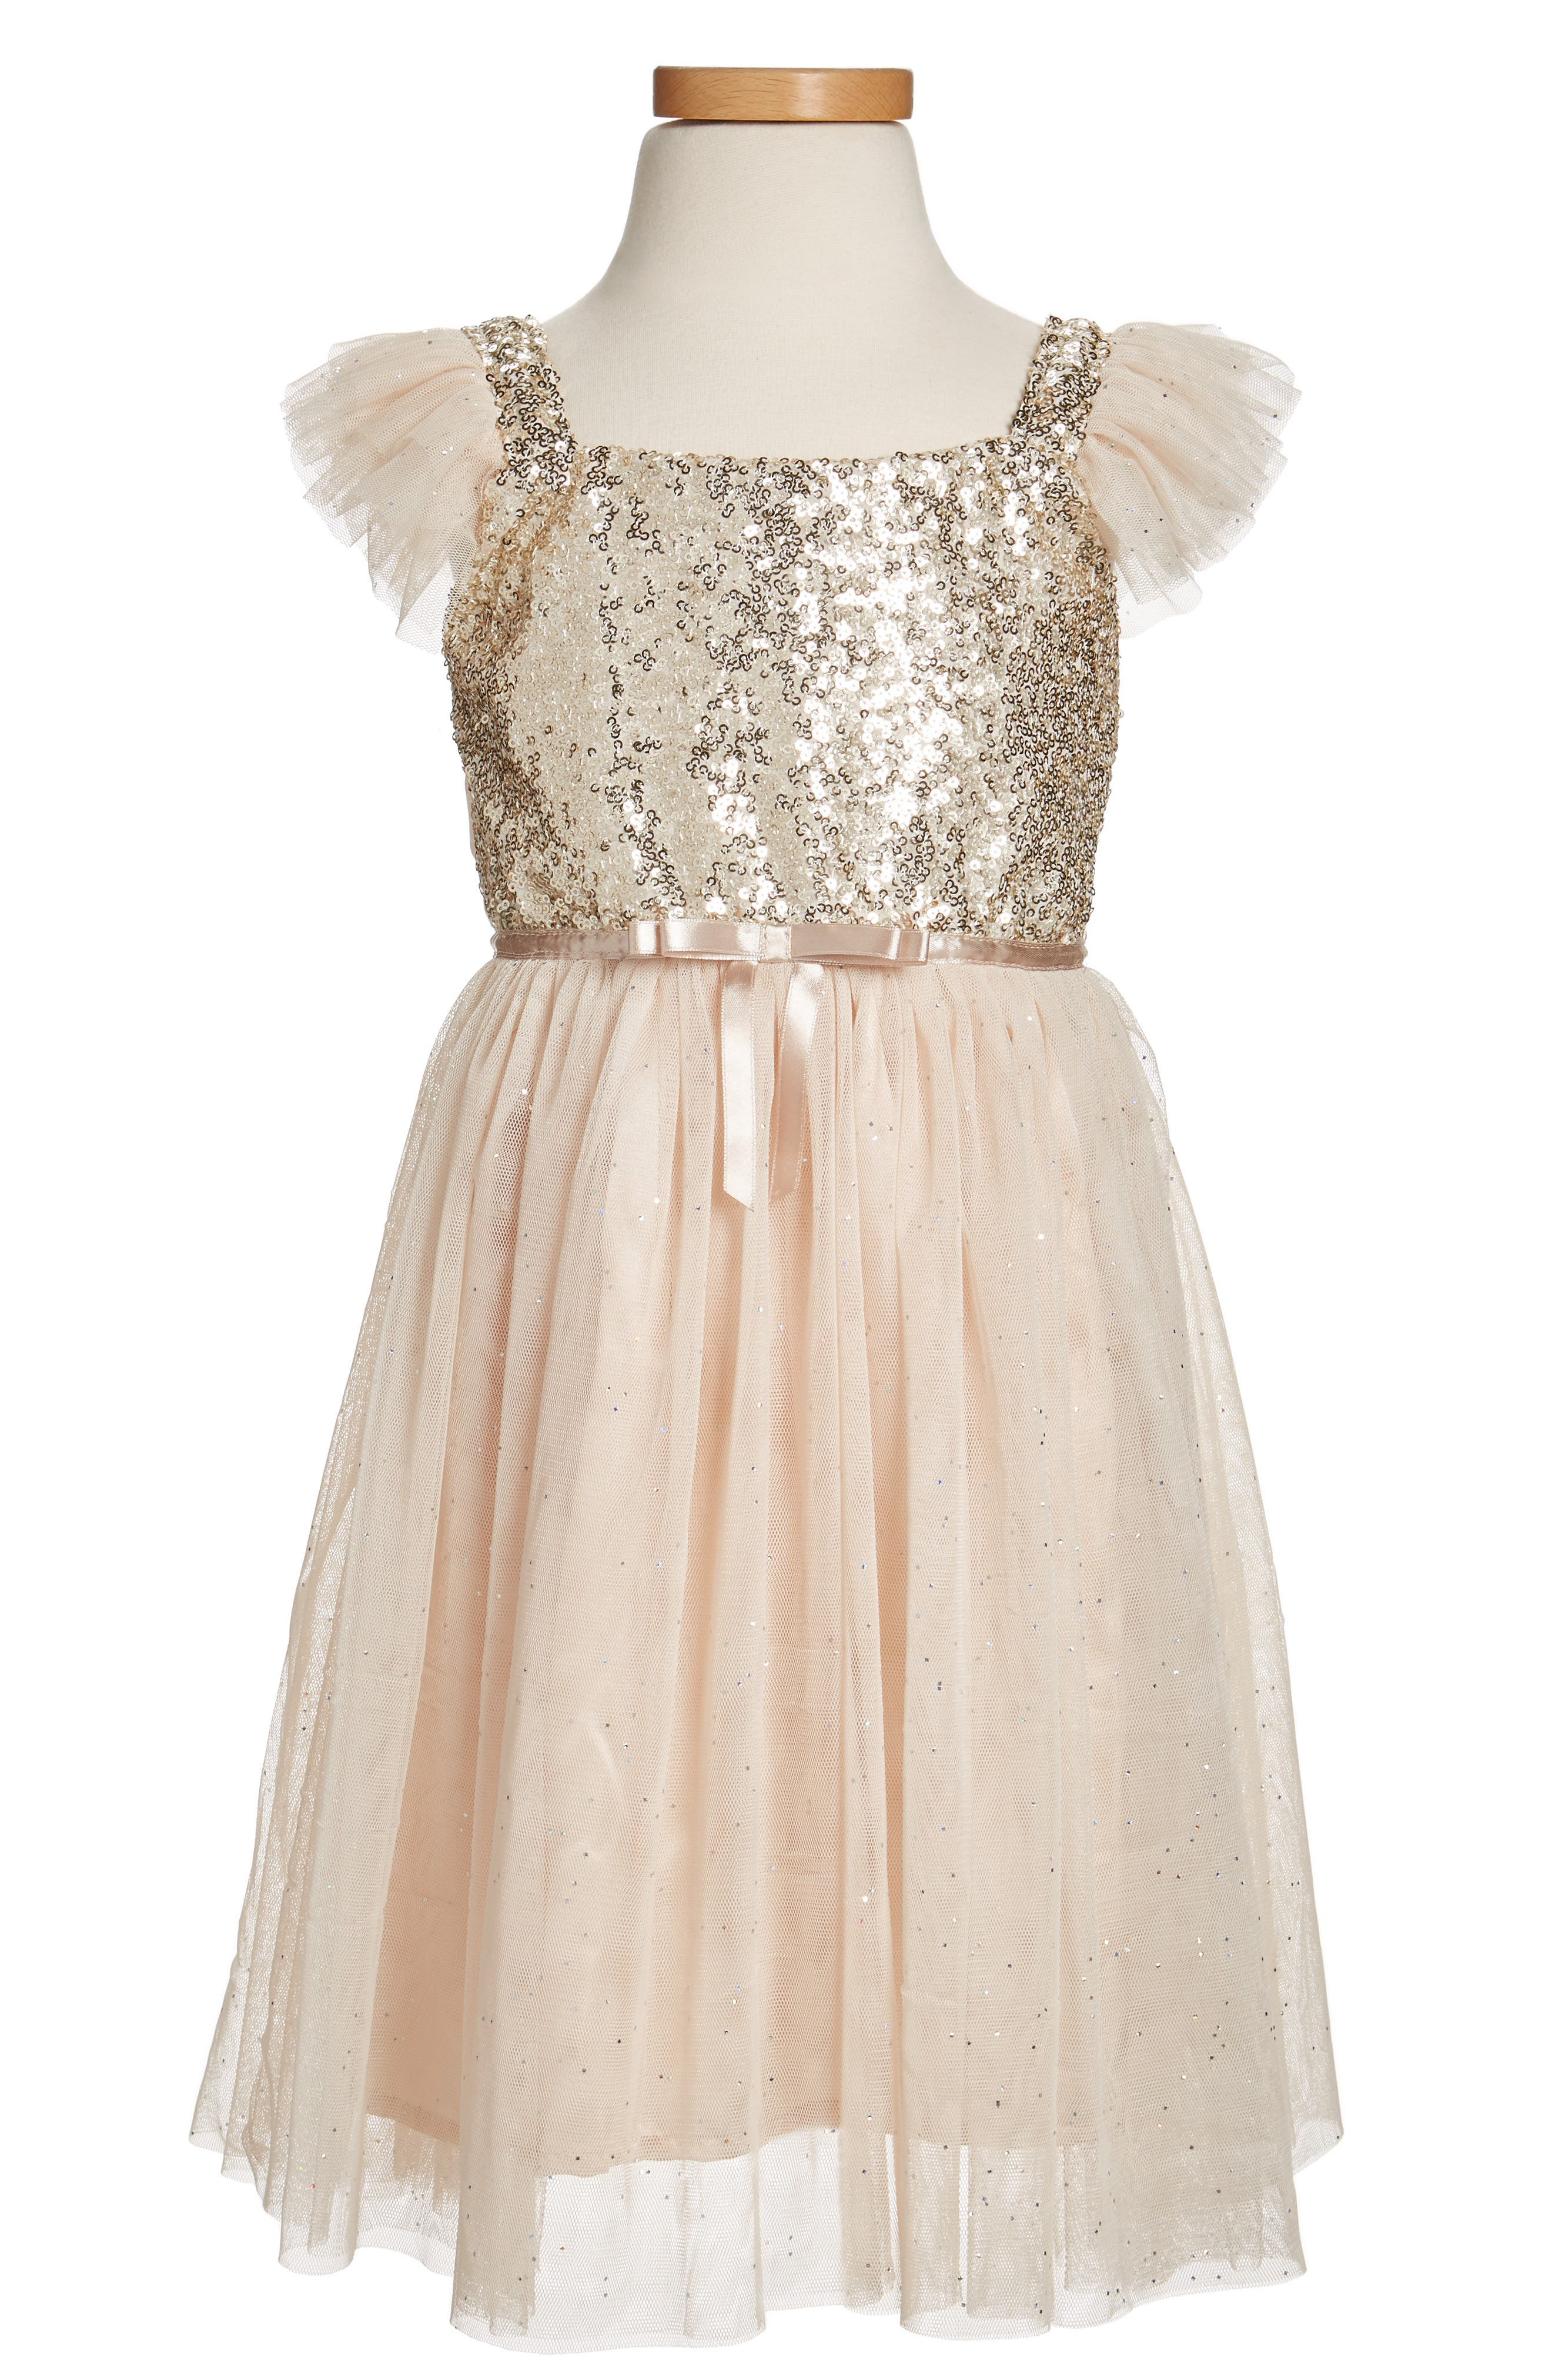 Sequin Bodice Tulle Dress,                         Main,                         color, Ivory/ Gold